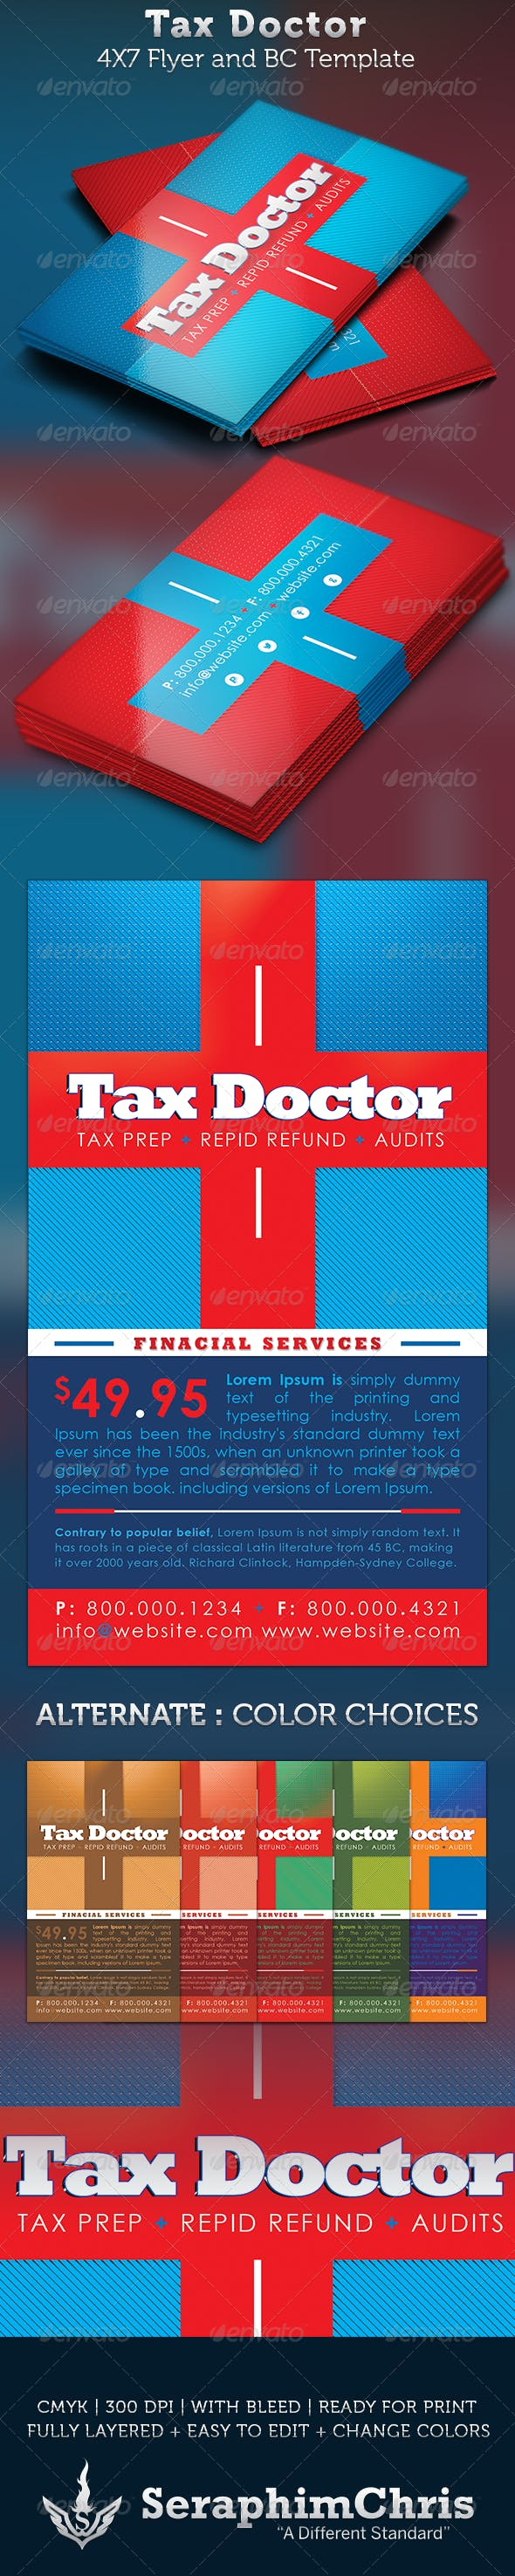 Tax Doctor Business Card And Flyer Template